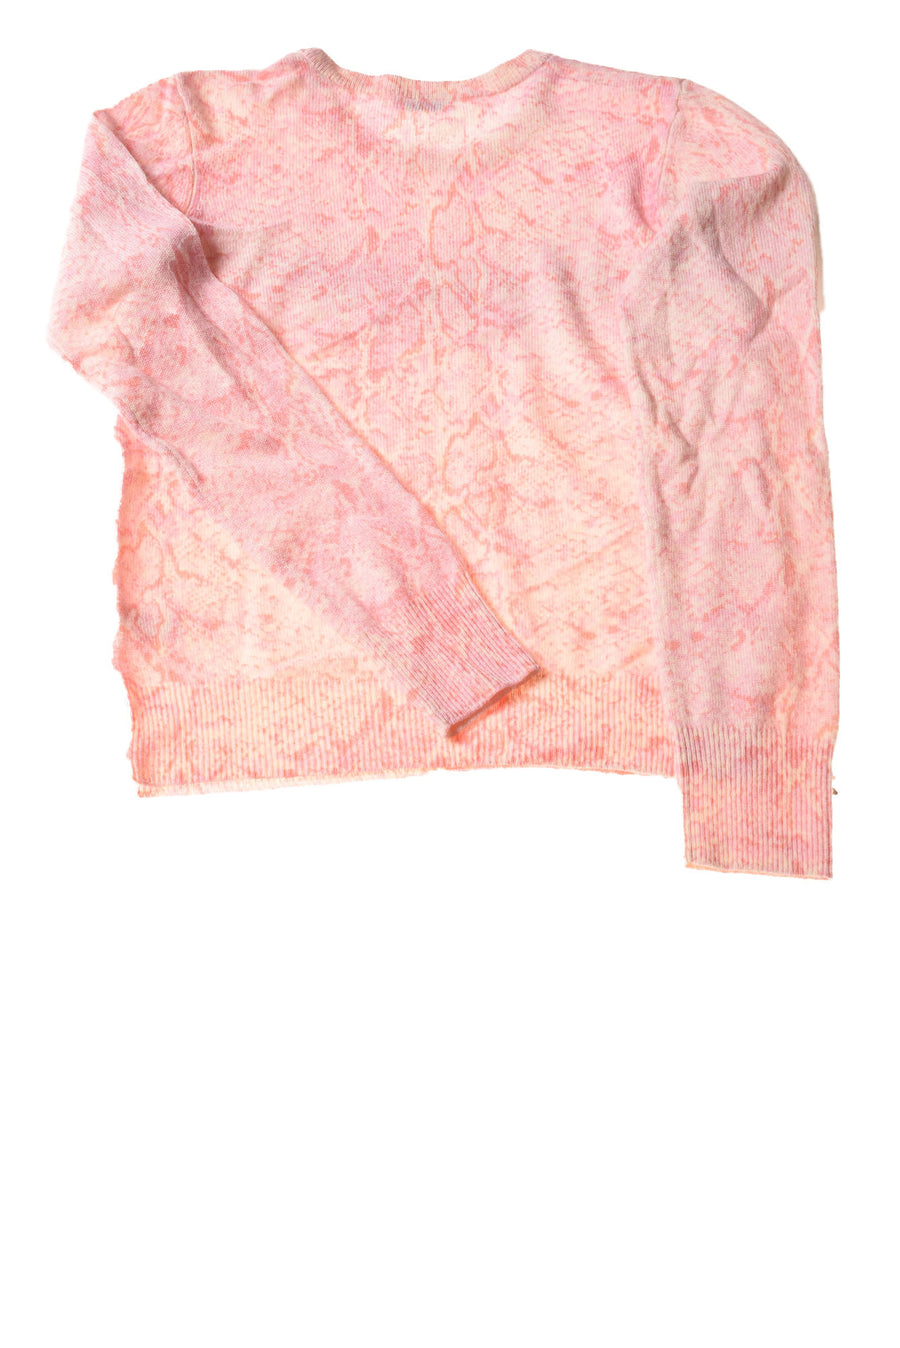 USED Equipment Femme Women's Sweater Small Pink /Print